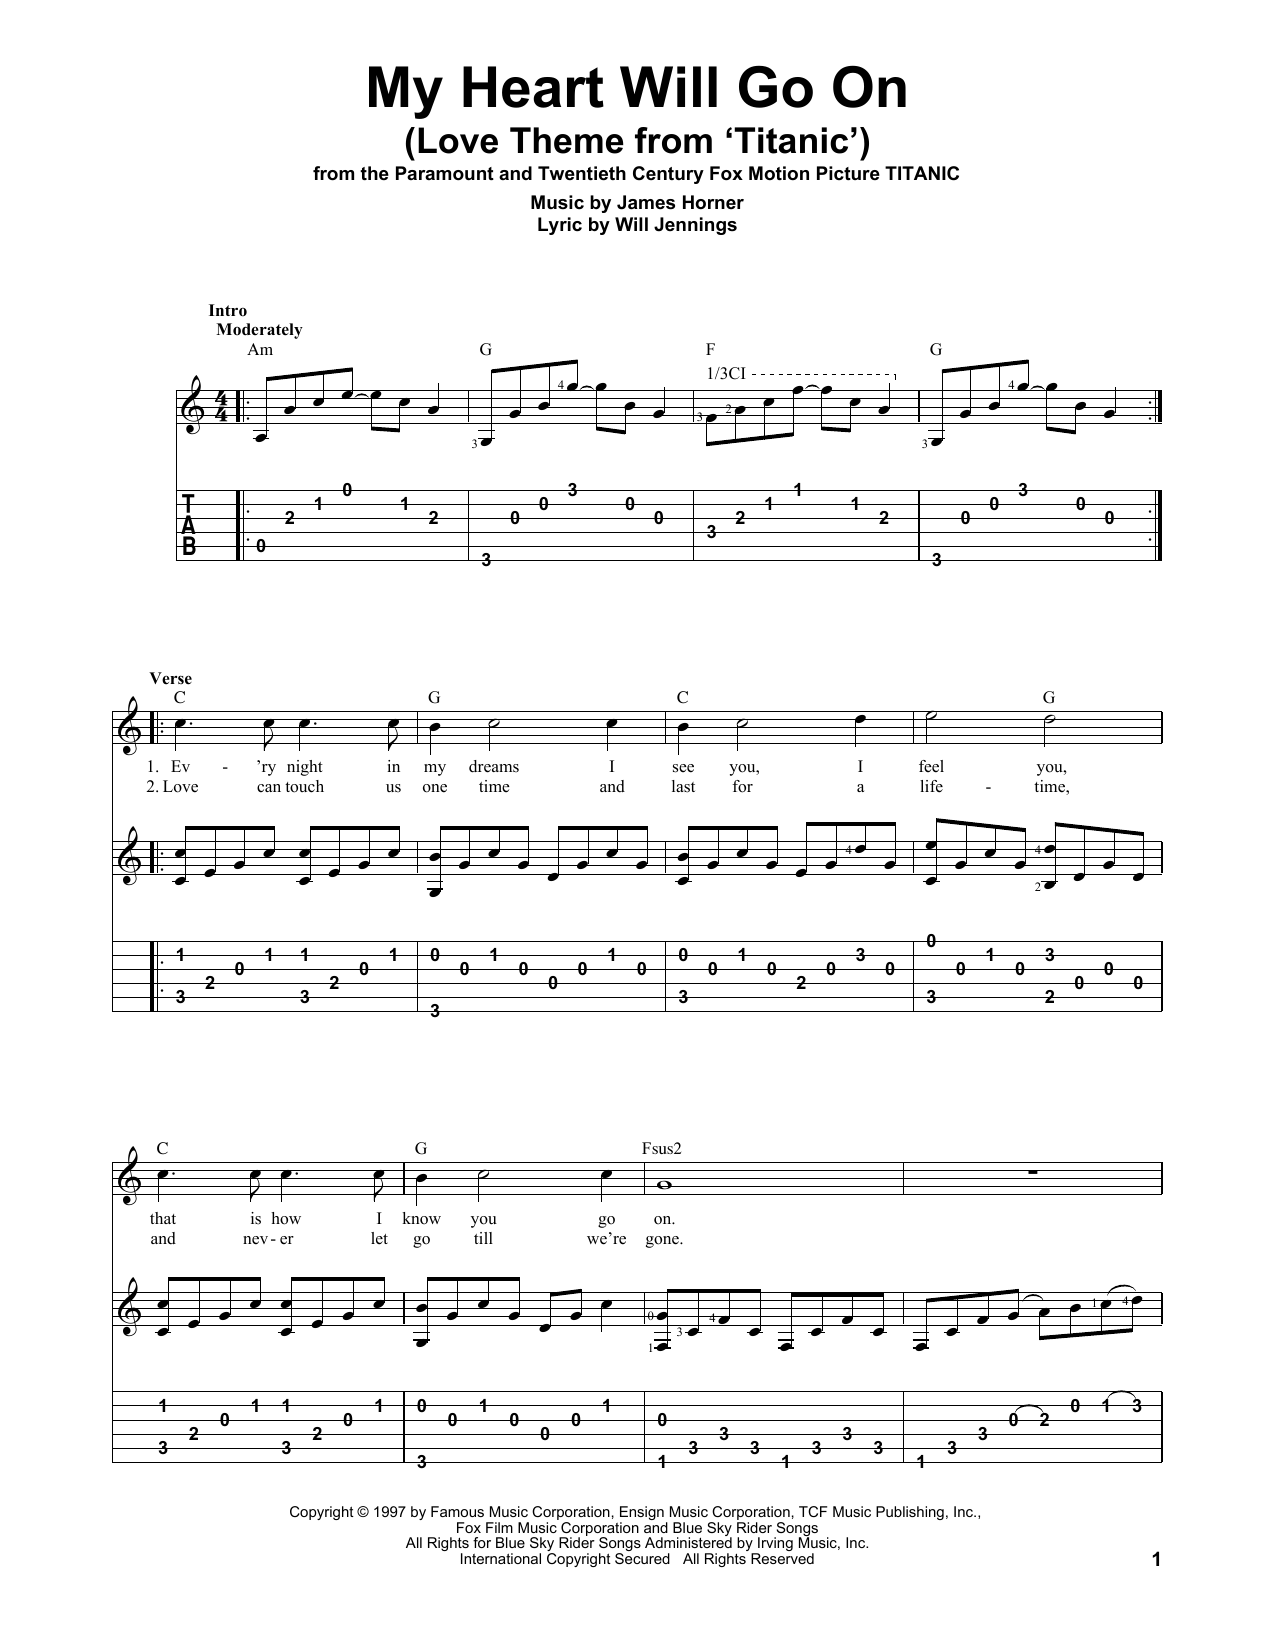 Violin violin chords my heart will go on : My Heart Will Go On (Love Theme from Titanic) Guitar Tab by Celine ...